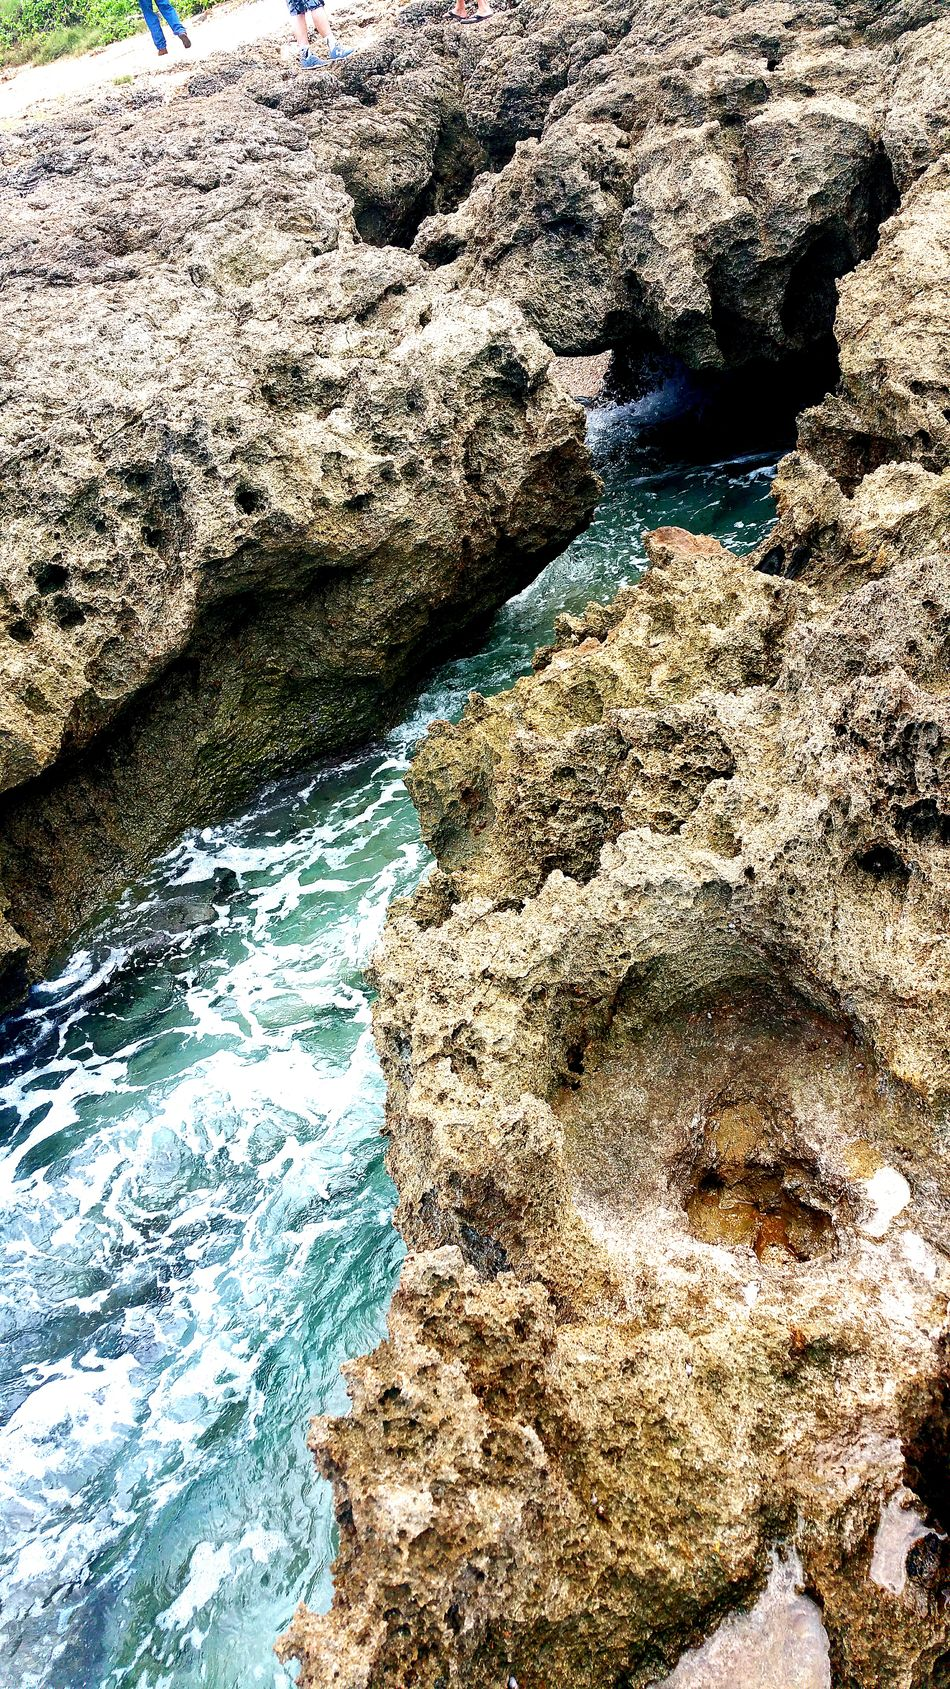 Crystal Clear Waters Shades Of Blue Textures And Surfaces Water_collection Waterways Hawaiishots Hawaiian Showcase: December Allthingsbeautiful Loving Life! Photooftheday Oceanside